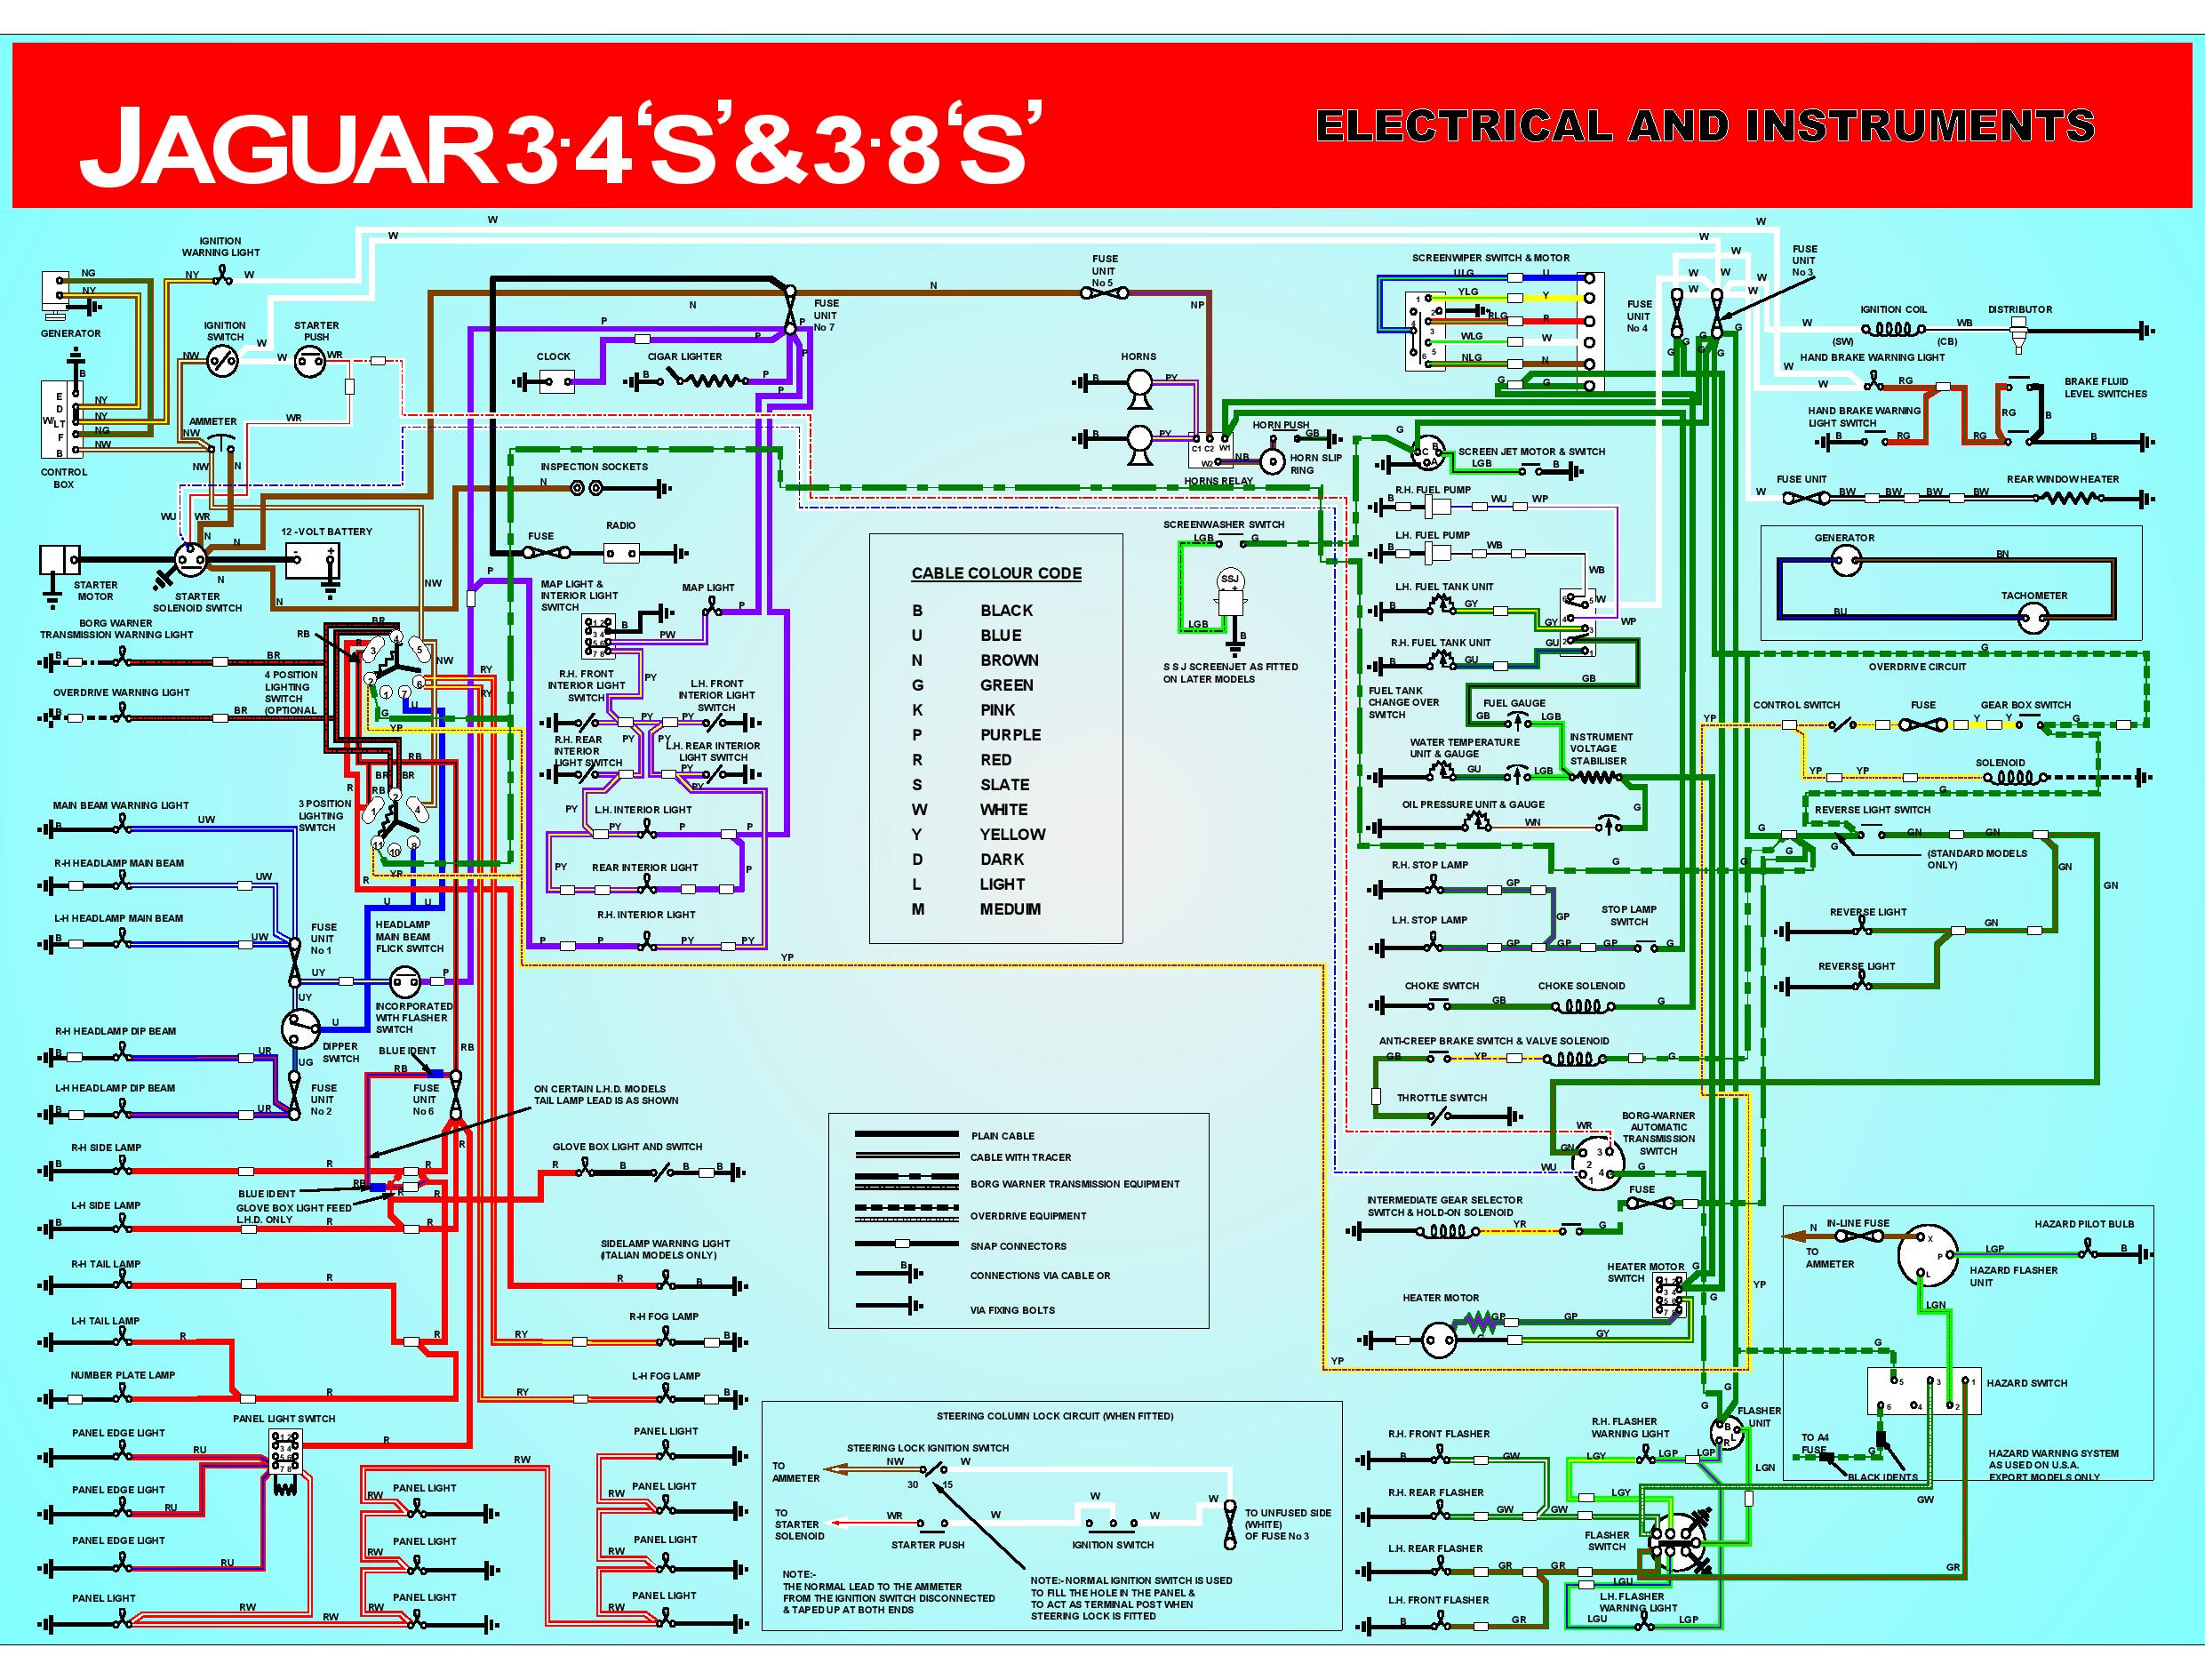 S type wiring page diagrams 633455 jaguar s type wiring diagram stype electrical jaguar s type wiring diagram at eliteediting.co